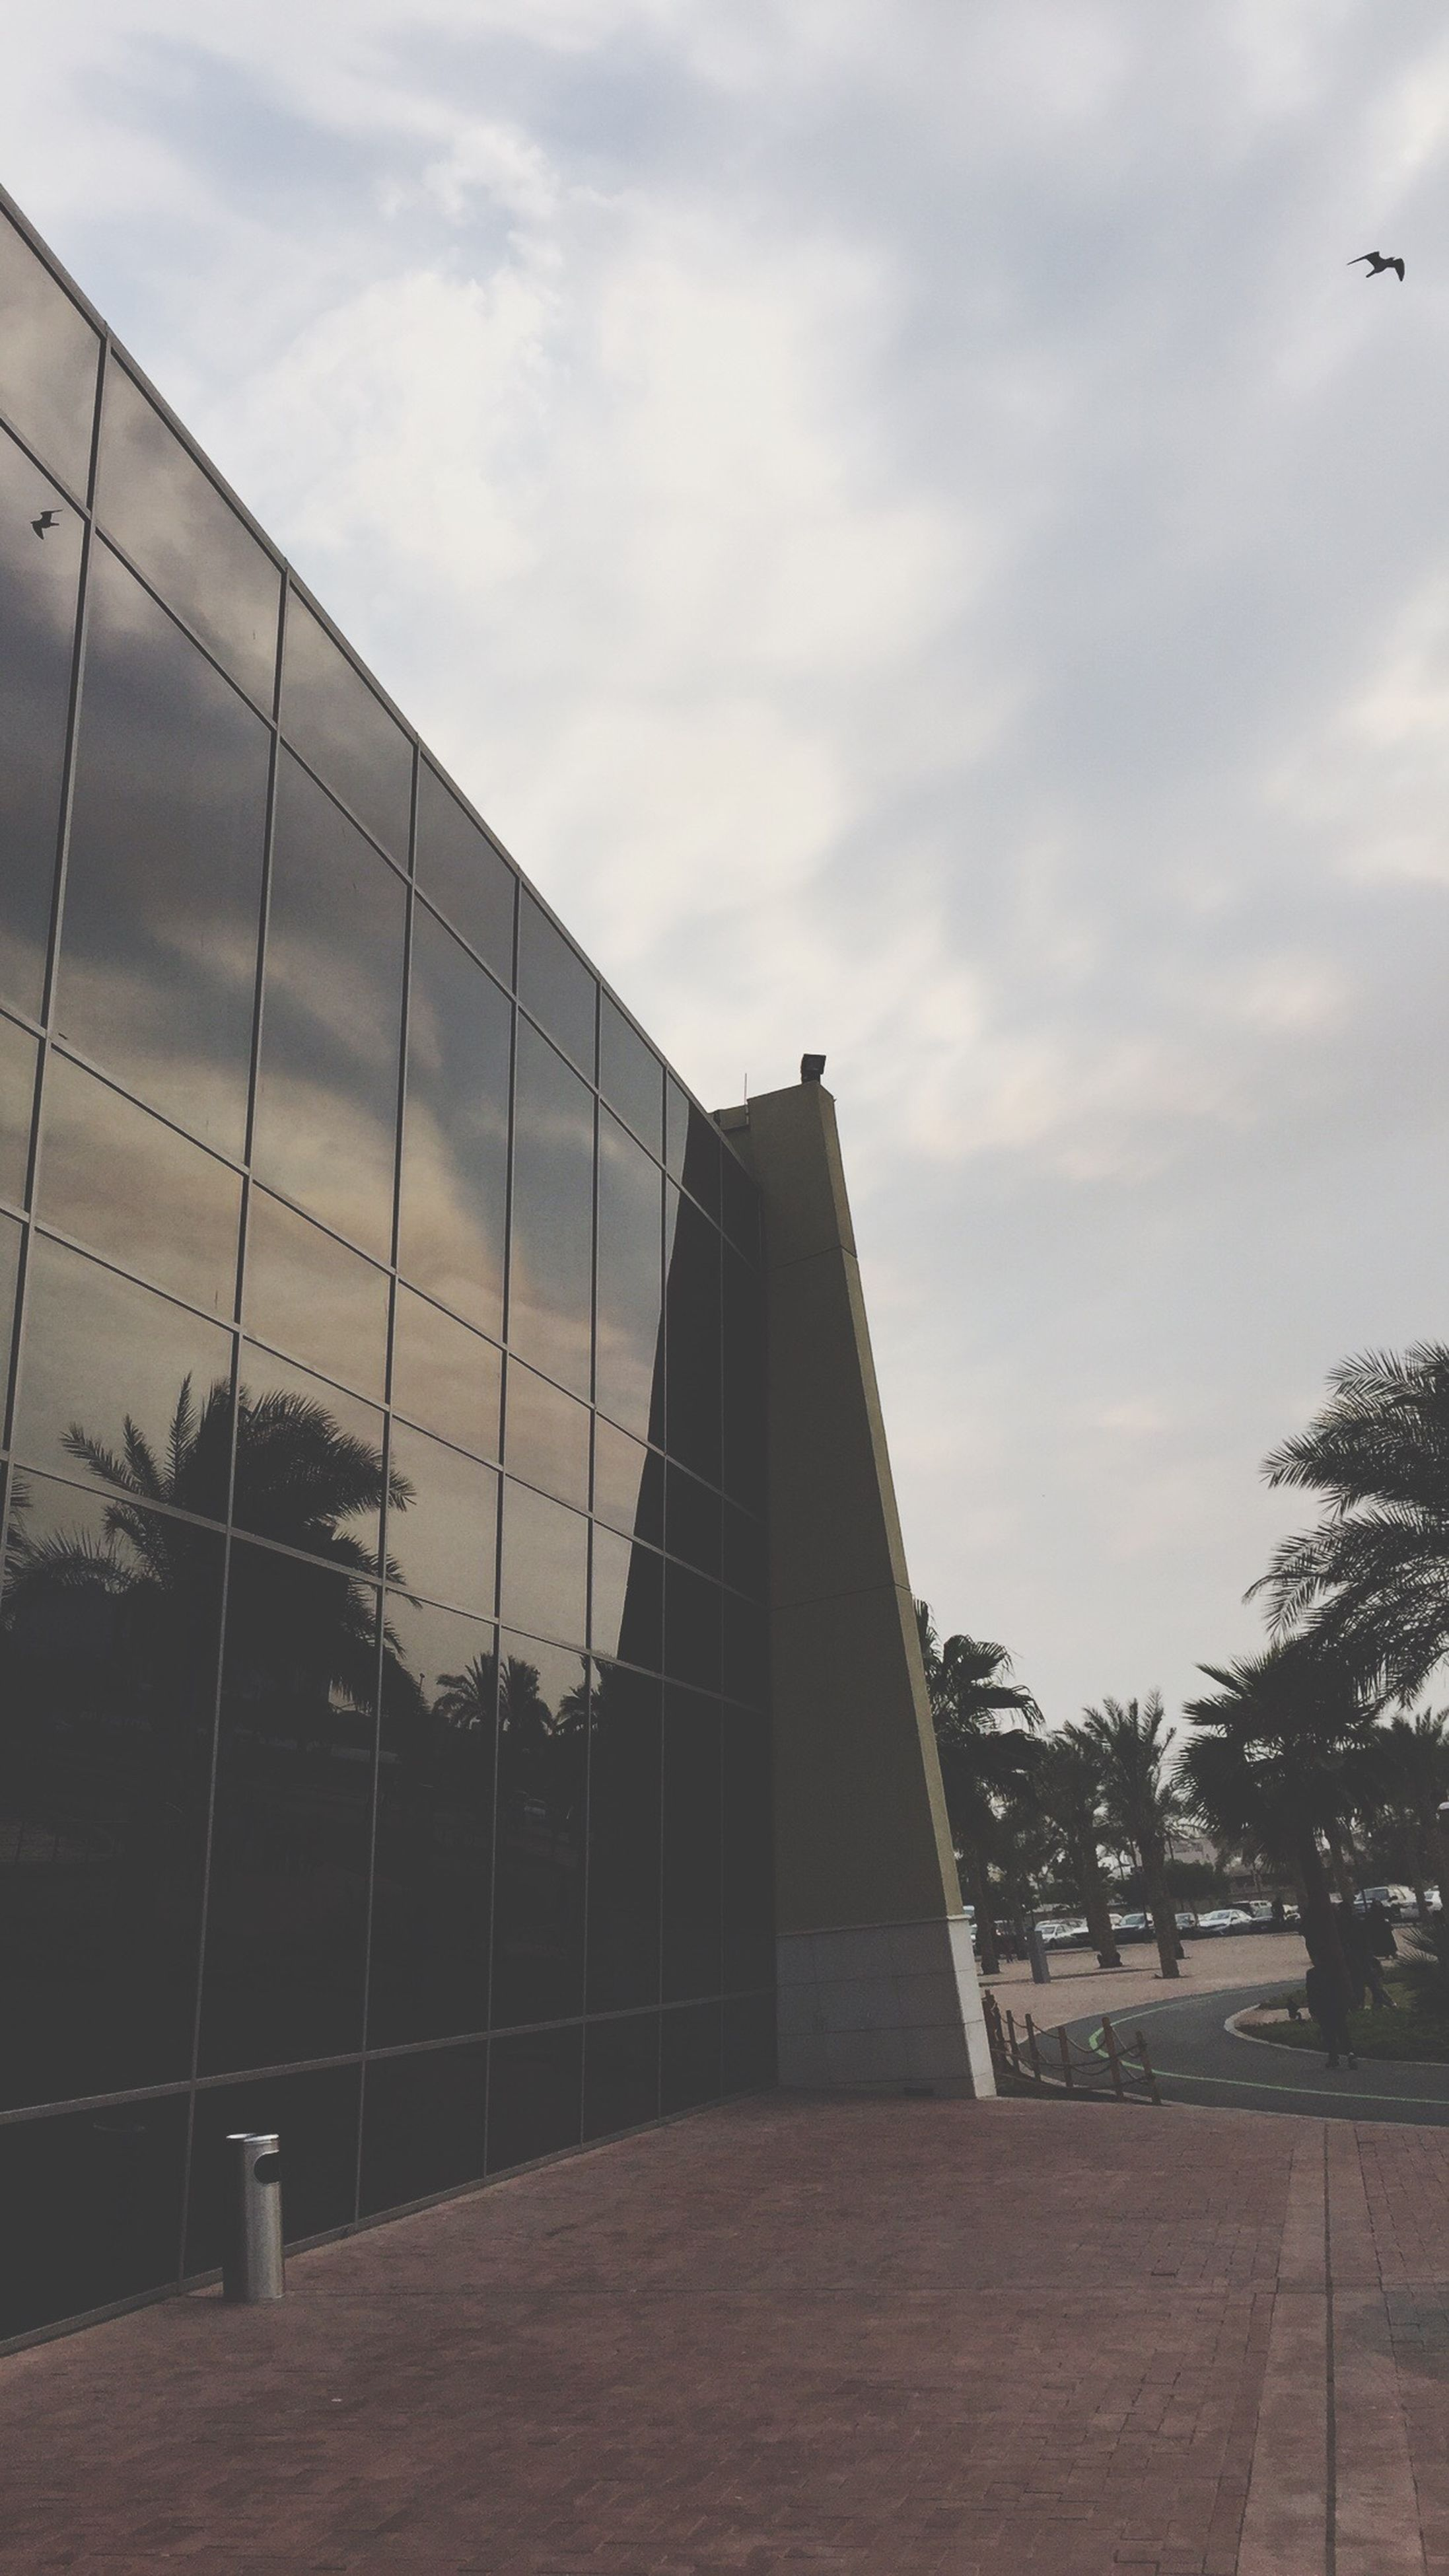 sky, architecture, built structure, sport, no people, cloud - sky, outdoors, day